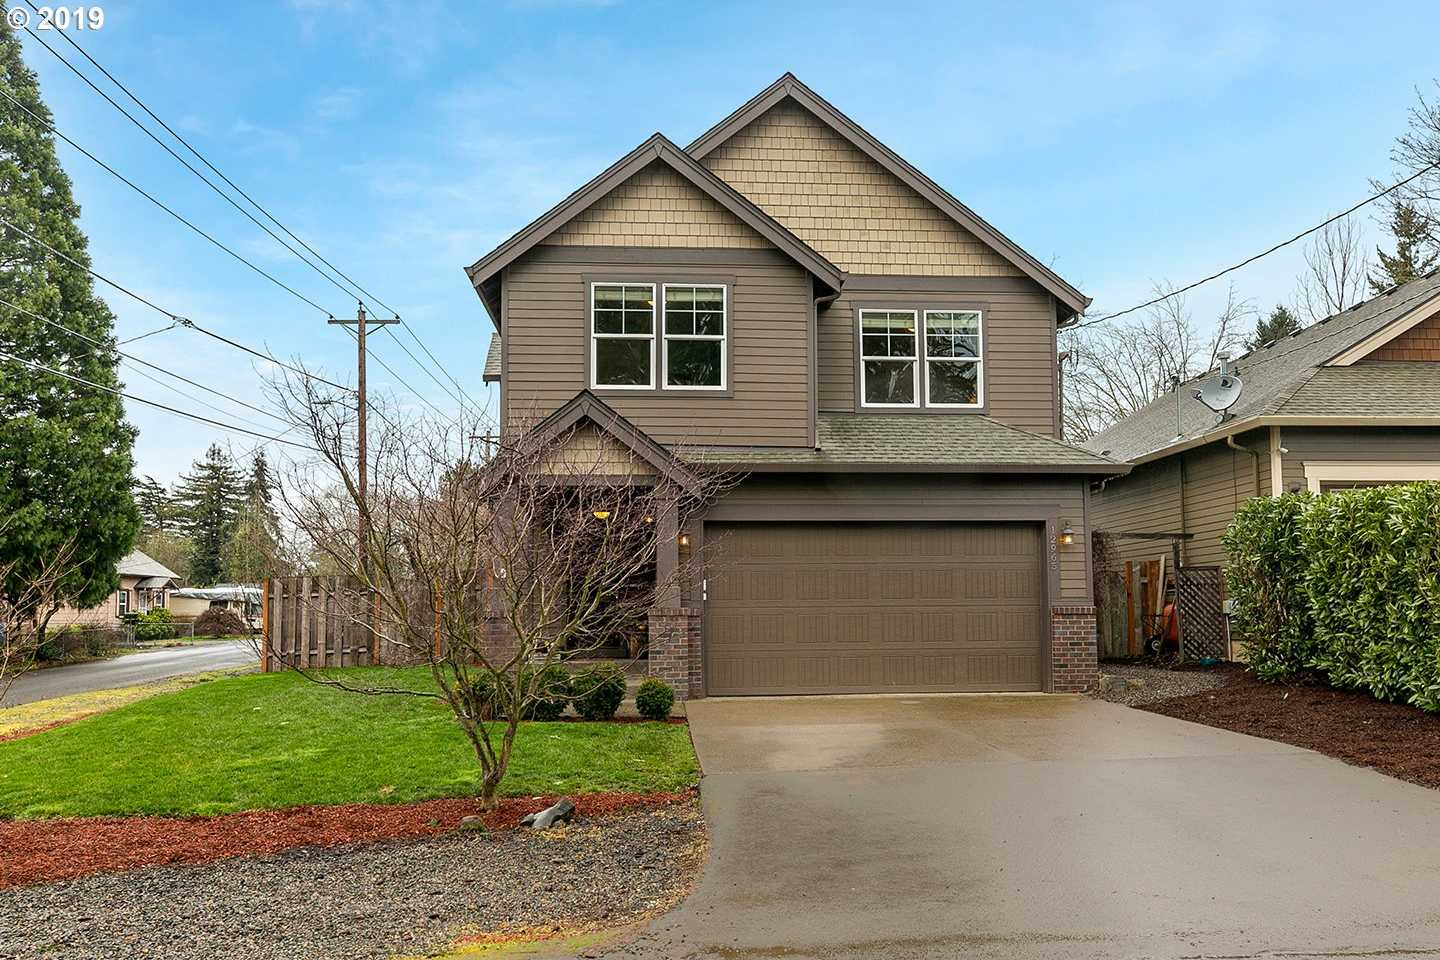 $512,000 - 4Br/3Ba -  for Sale in Oak Grove Community Council, Milwaukie